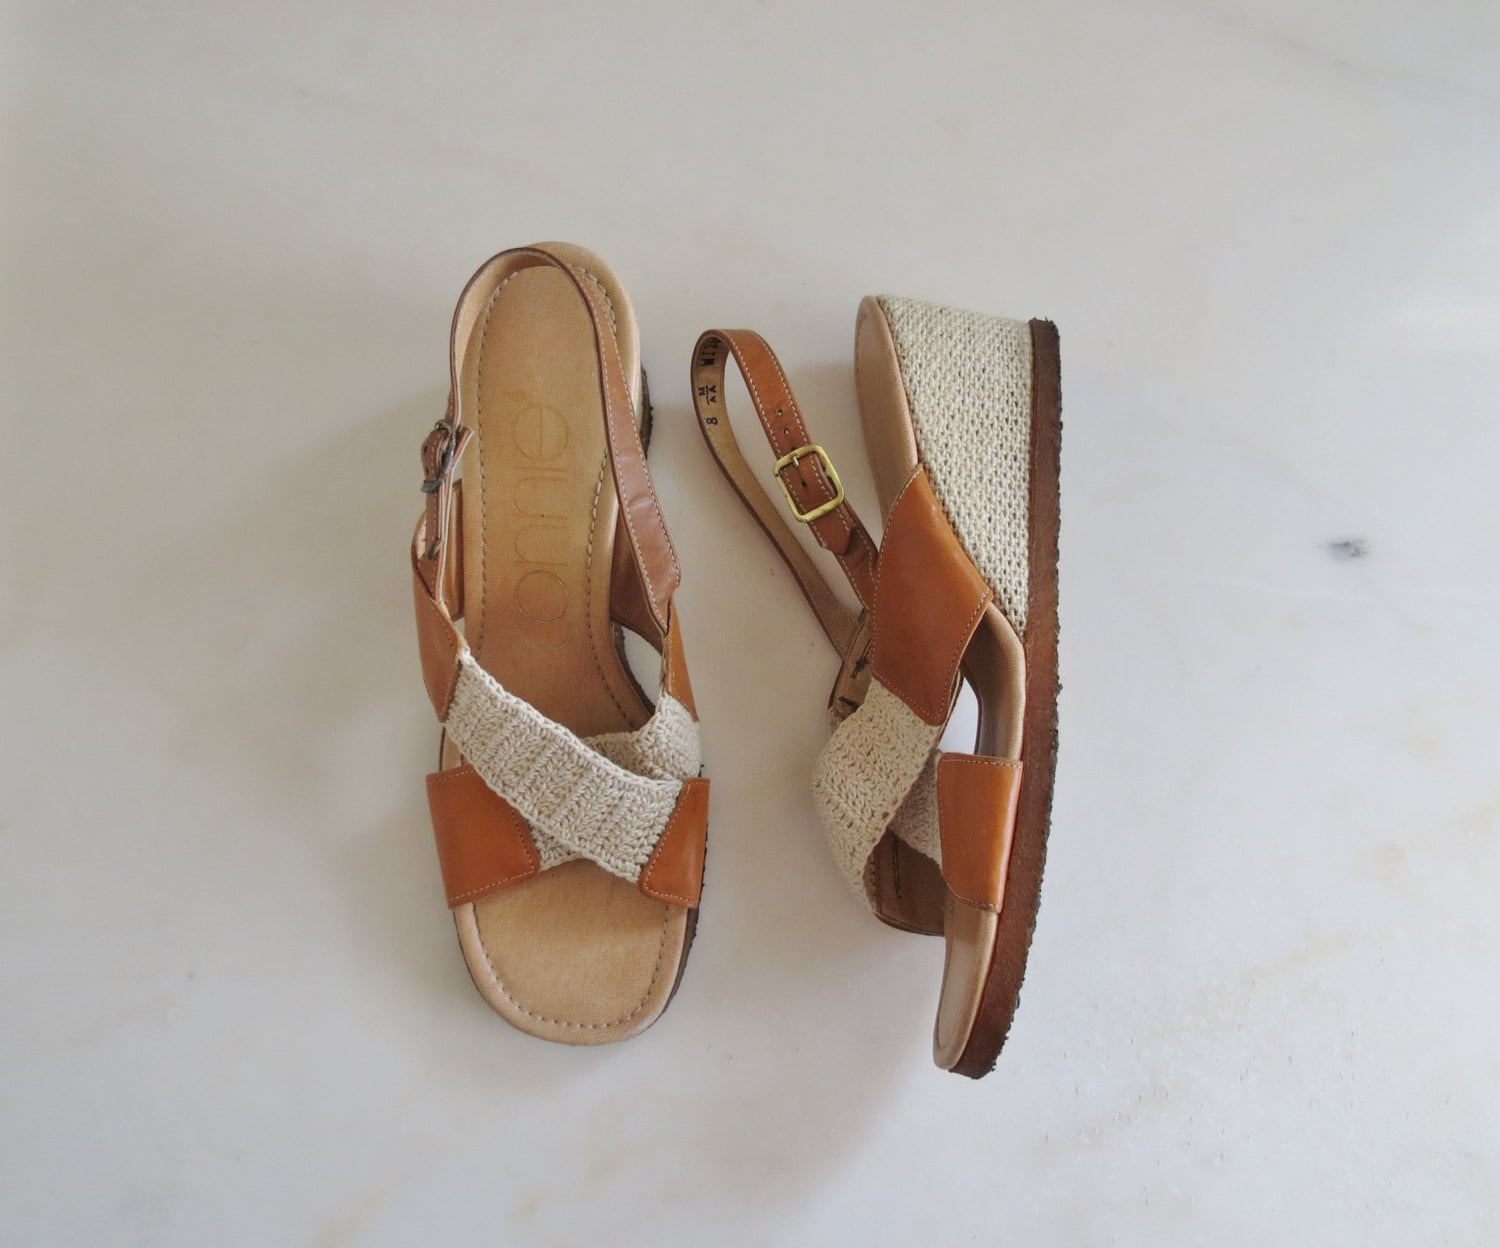 70s wedge sandals size 8 us